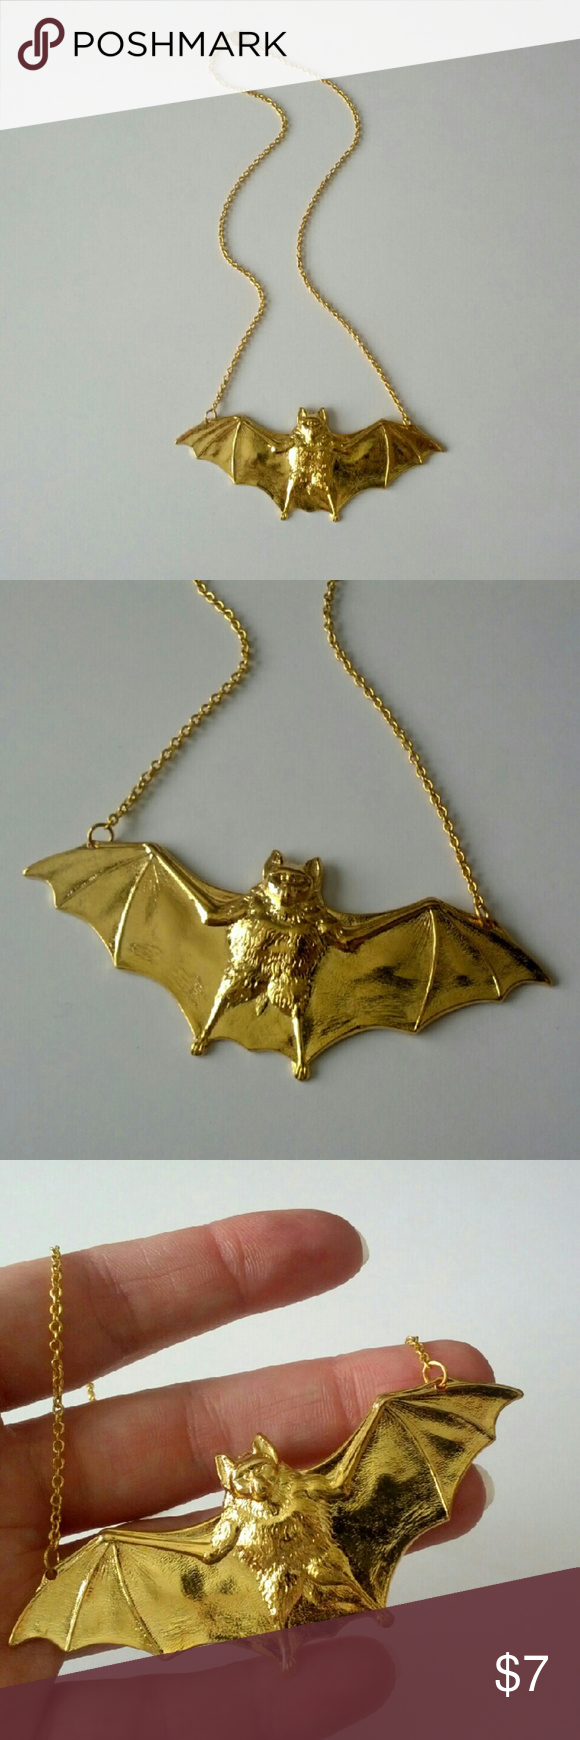 "Striking golden bat necklace! Incredibly unique and a definite conversation piece!  Tried on but never worn.  About 17"" in length.  I'm selling my massive jewelry collection to help pay for home repairs and renovations.  Price is firm, but bundle and save 10%! Jewelry Necklaces"